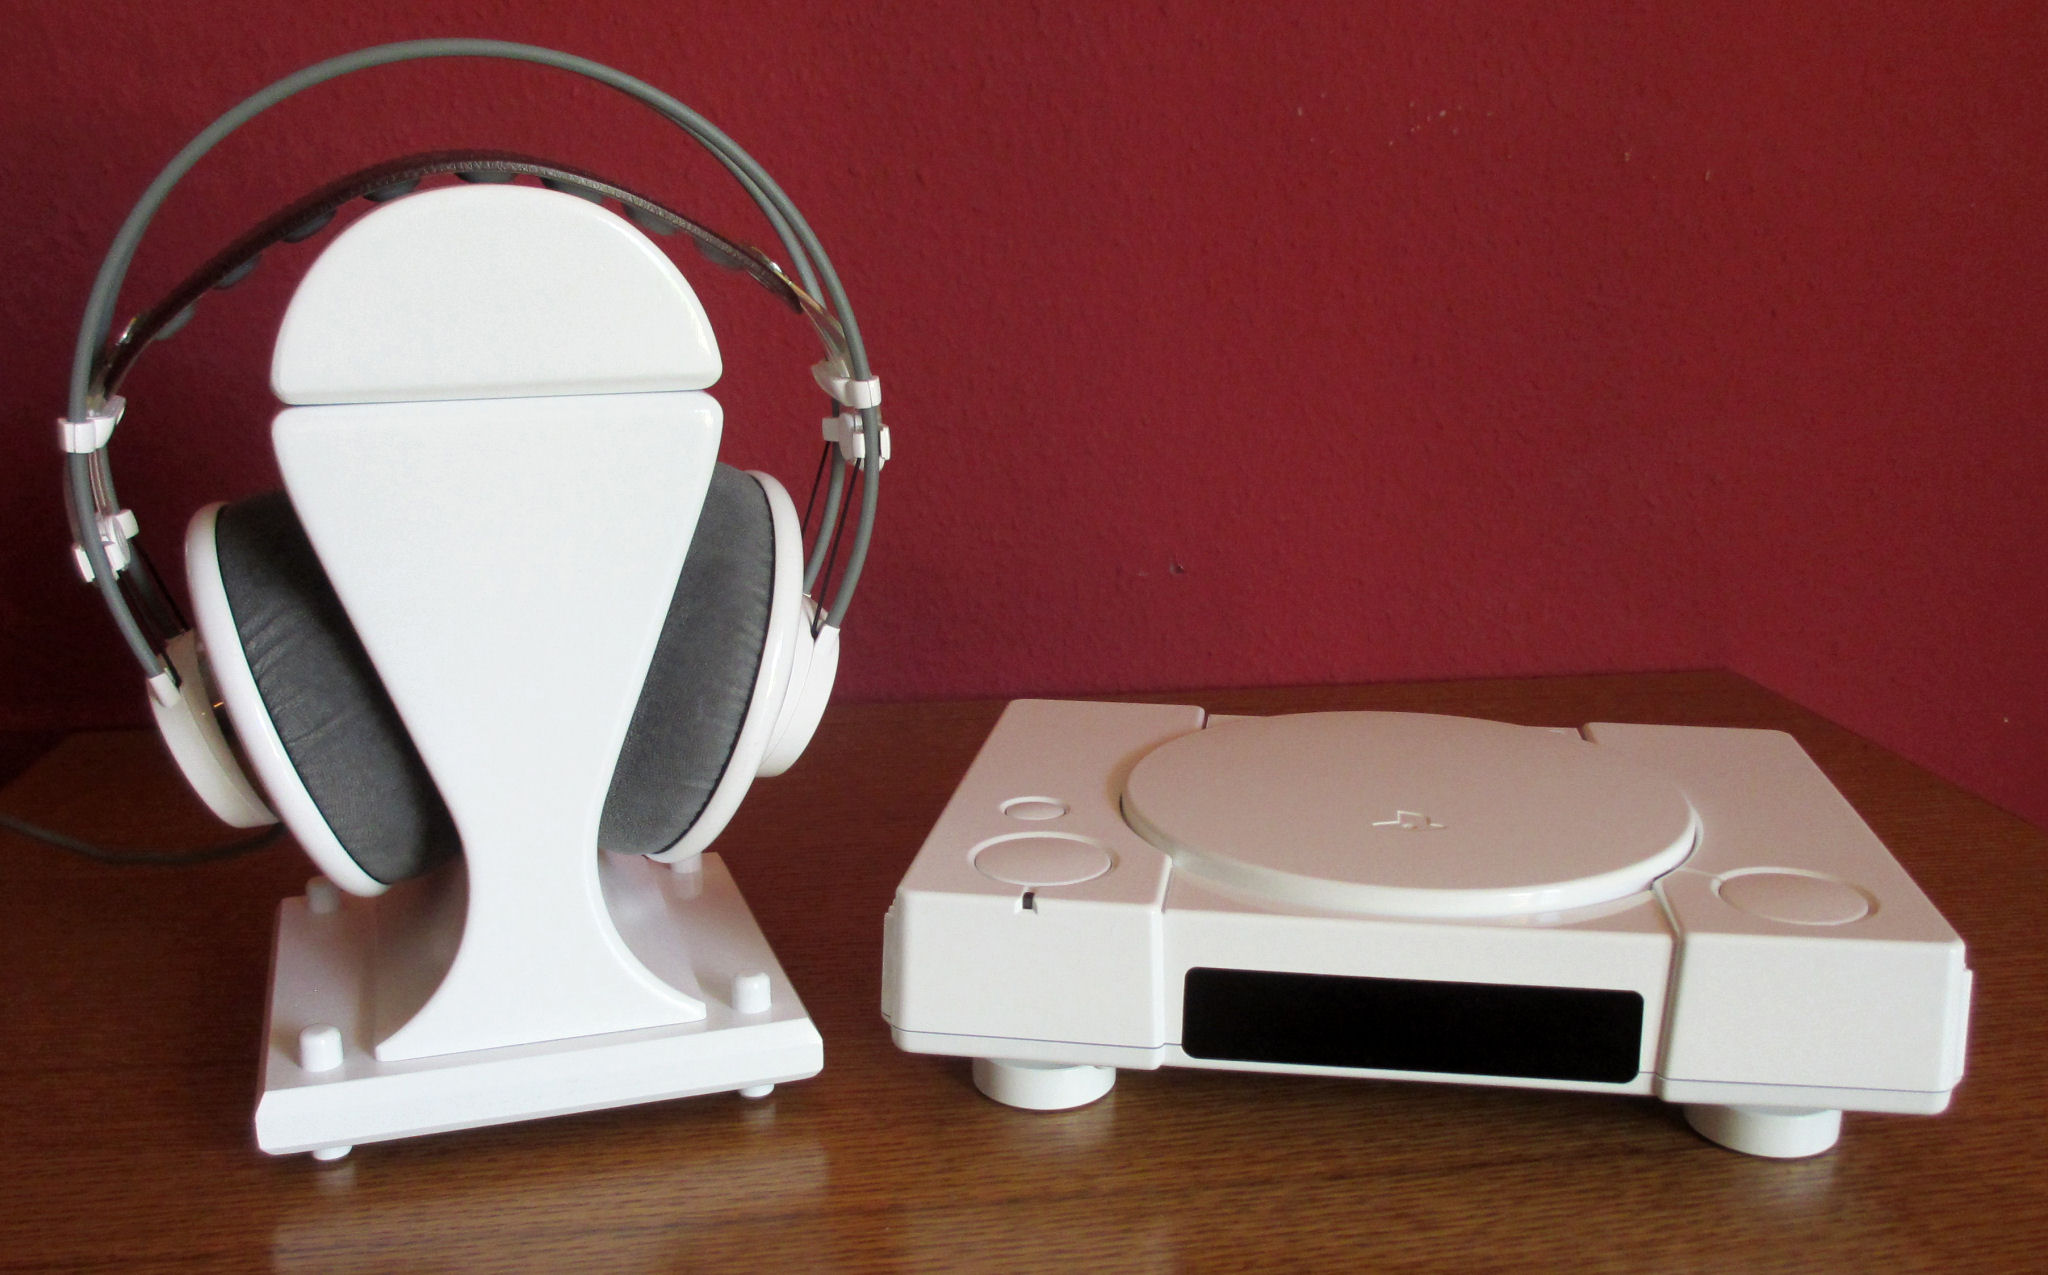 Sony Playstation 1 SCPH-1002 SCPH-1000 SCPH-1001 as High End CD Player modding audiophile hifi stereo headphone stand